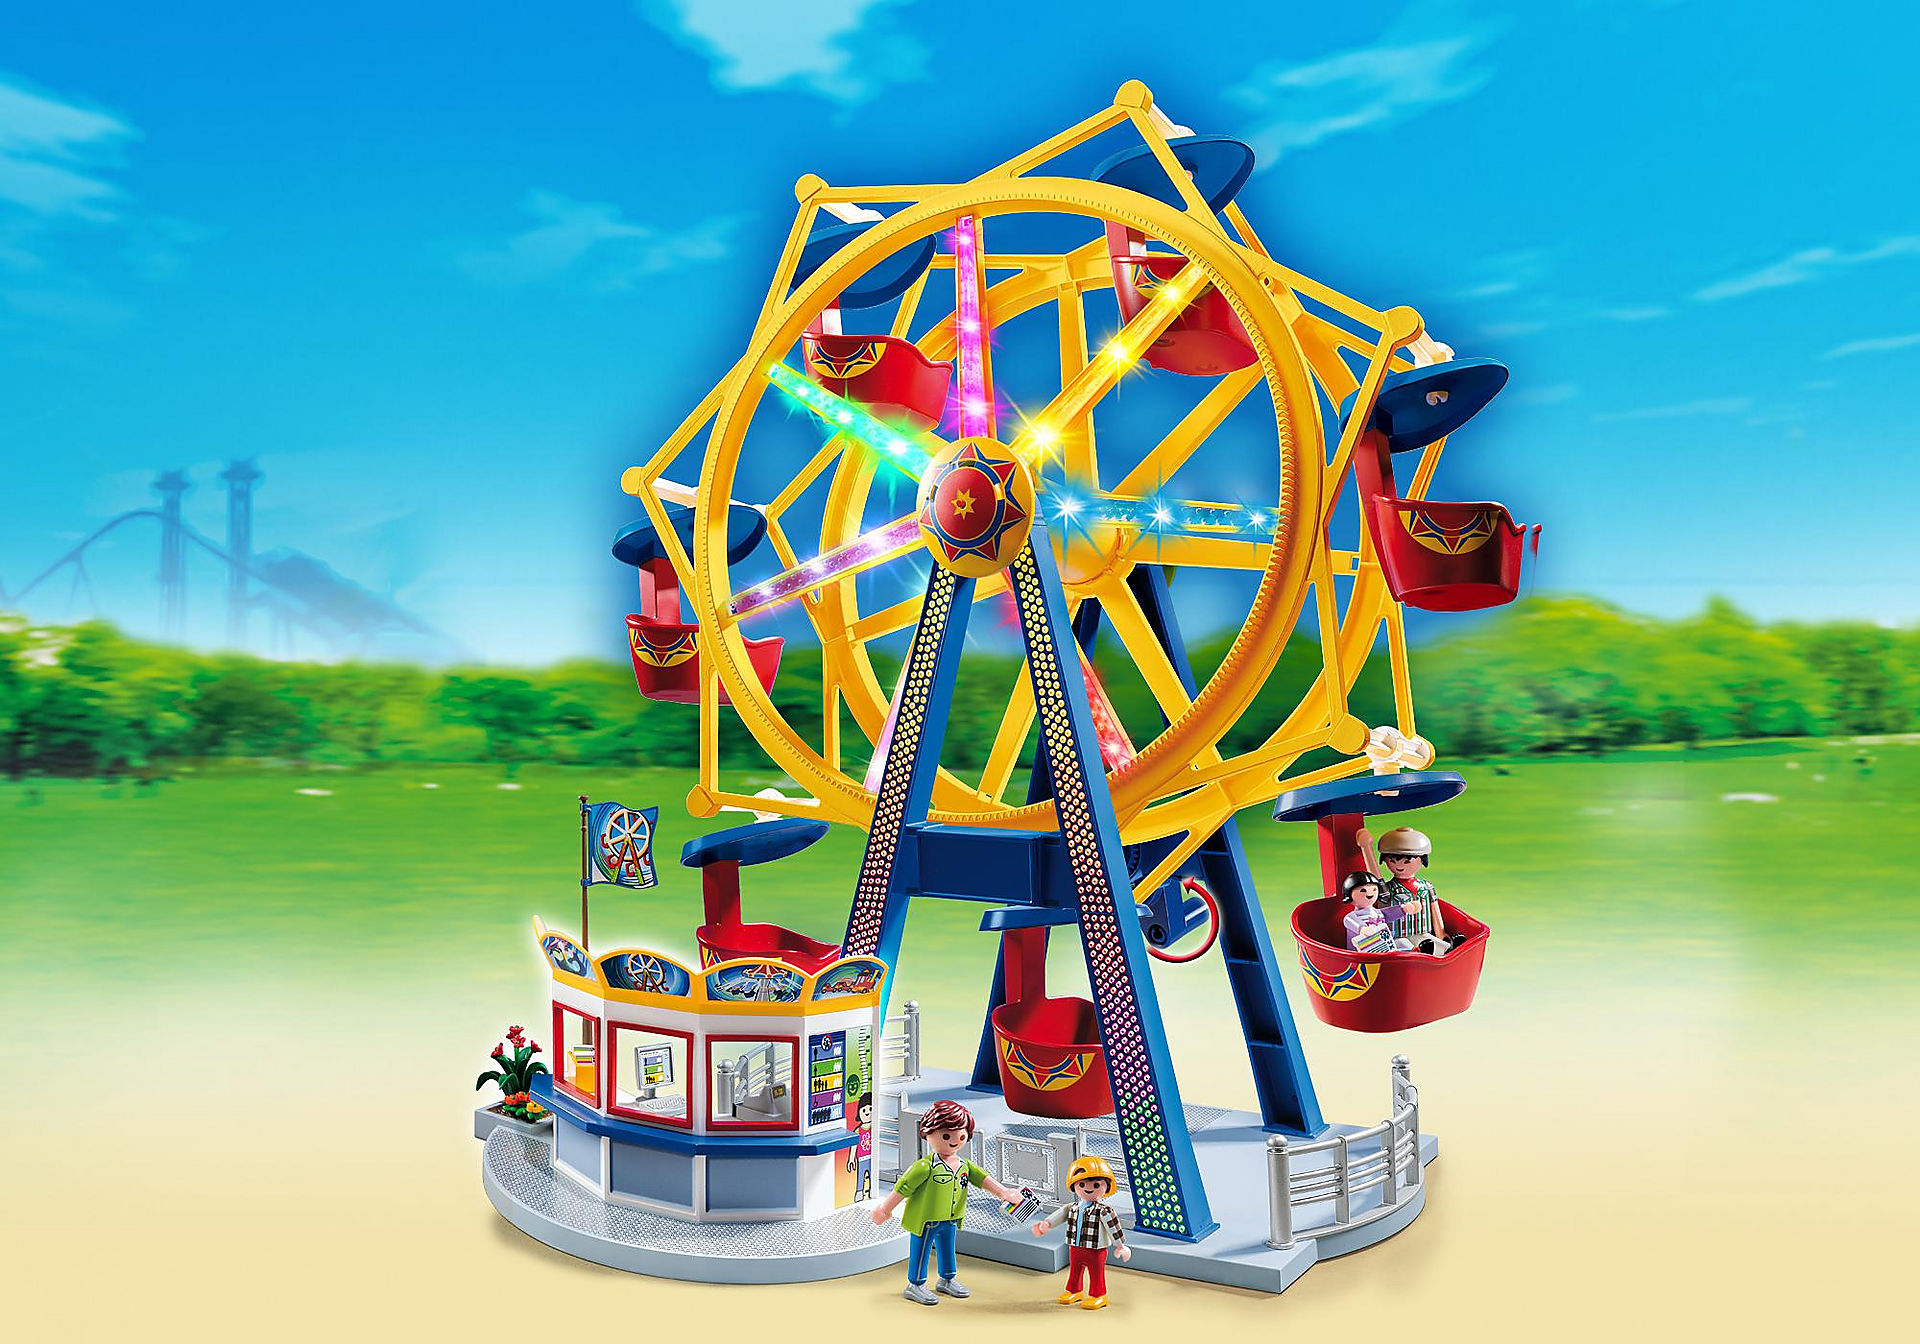 http://media.playmobil.com/i/playmobil/5552_product_detail/Grande roue avec illuminations